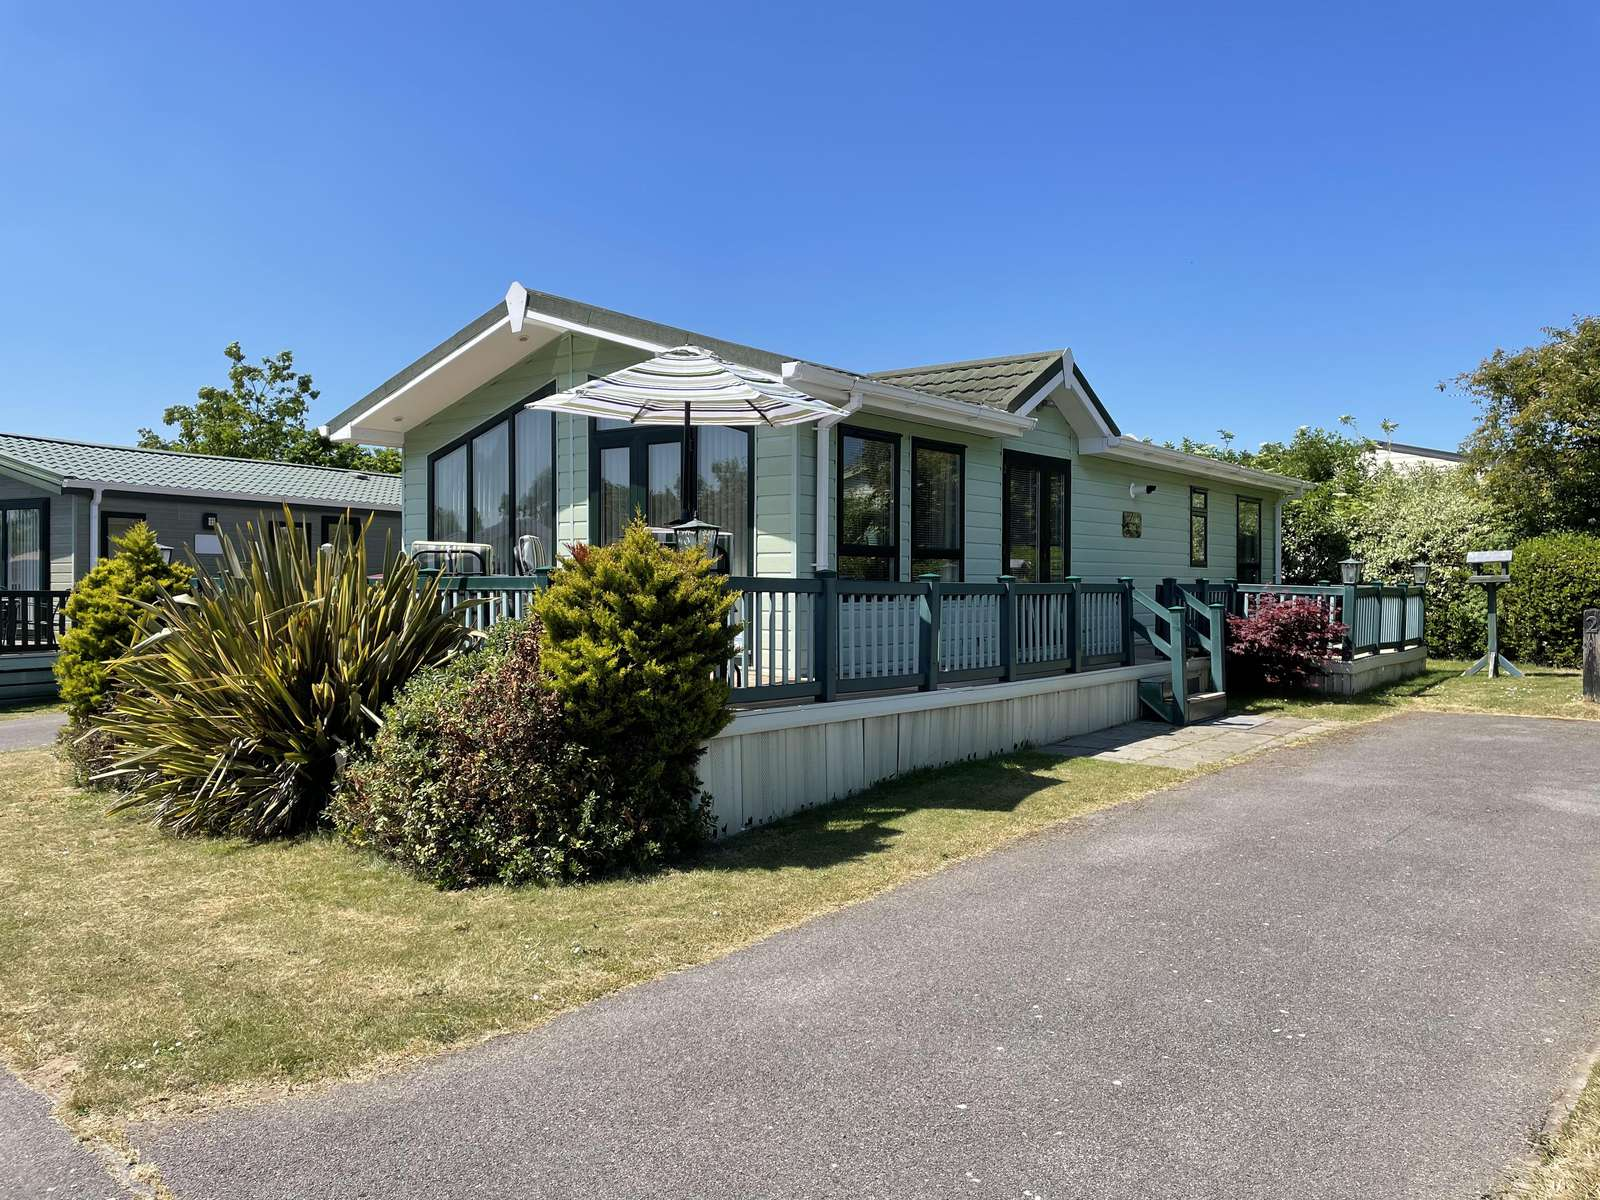 70002TG – The Grove area, 2 bed, 6 berth lodge with decking. Platinum Deluxe rated. - property